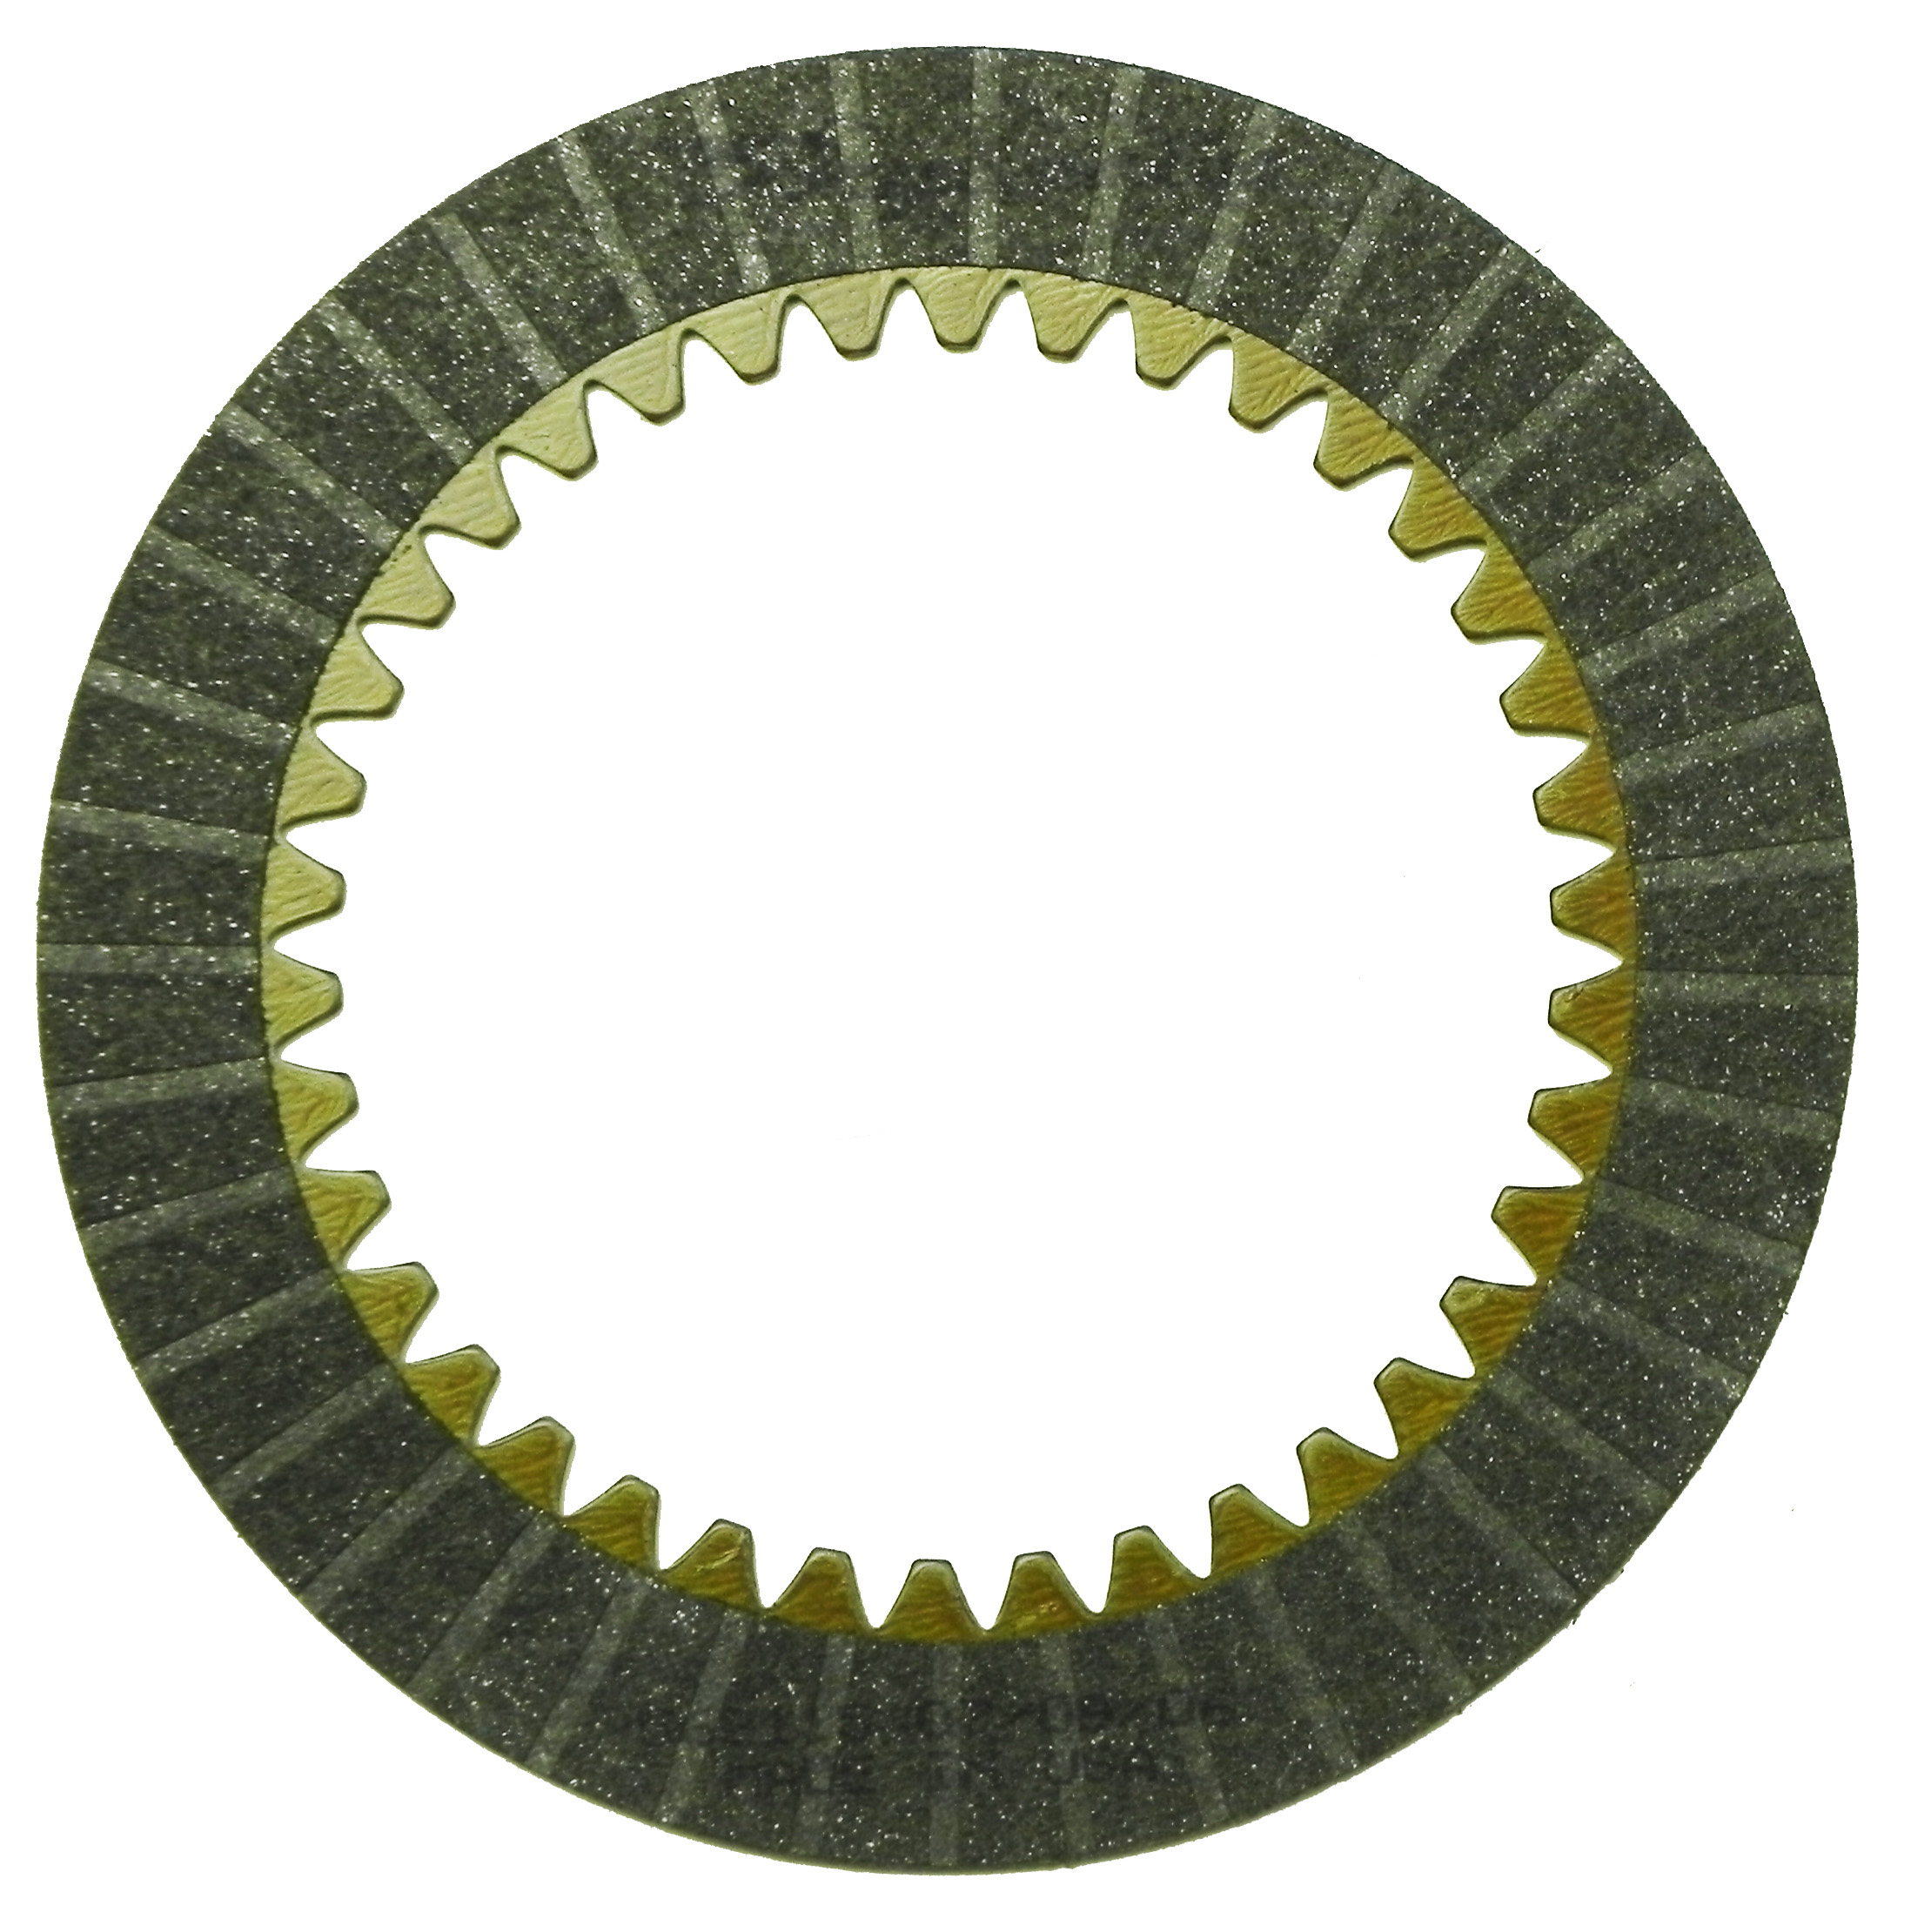 R562115 | 2001-2005 Friction Clutch Plate High Energy Forward Brake High Energy